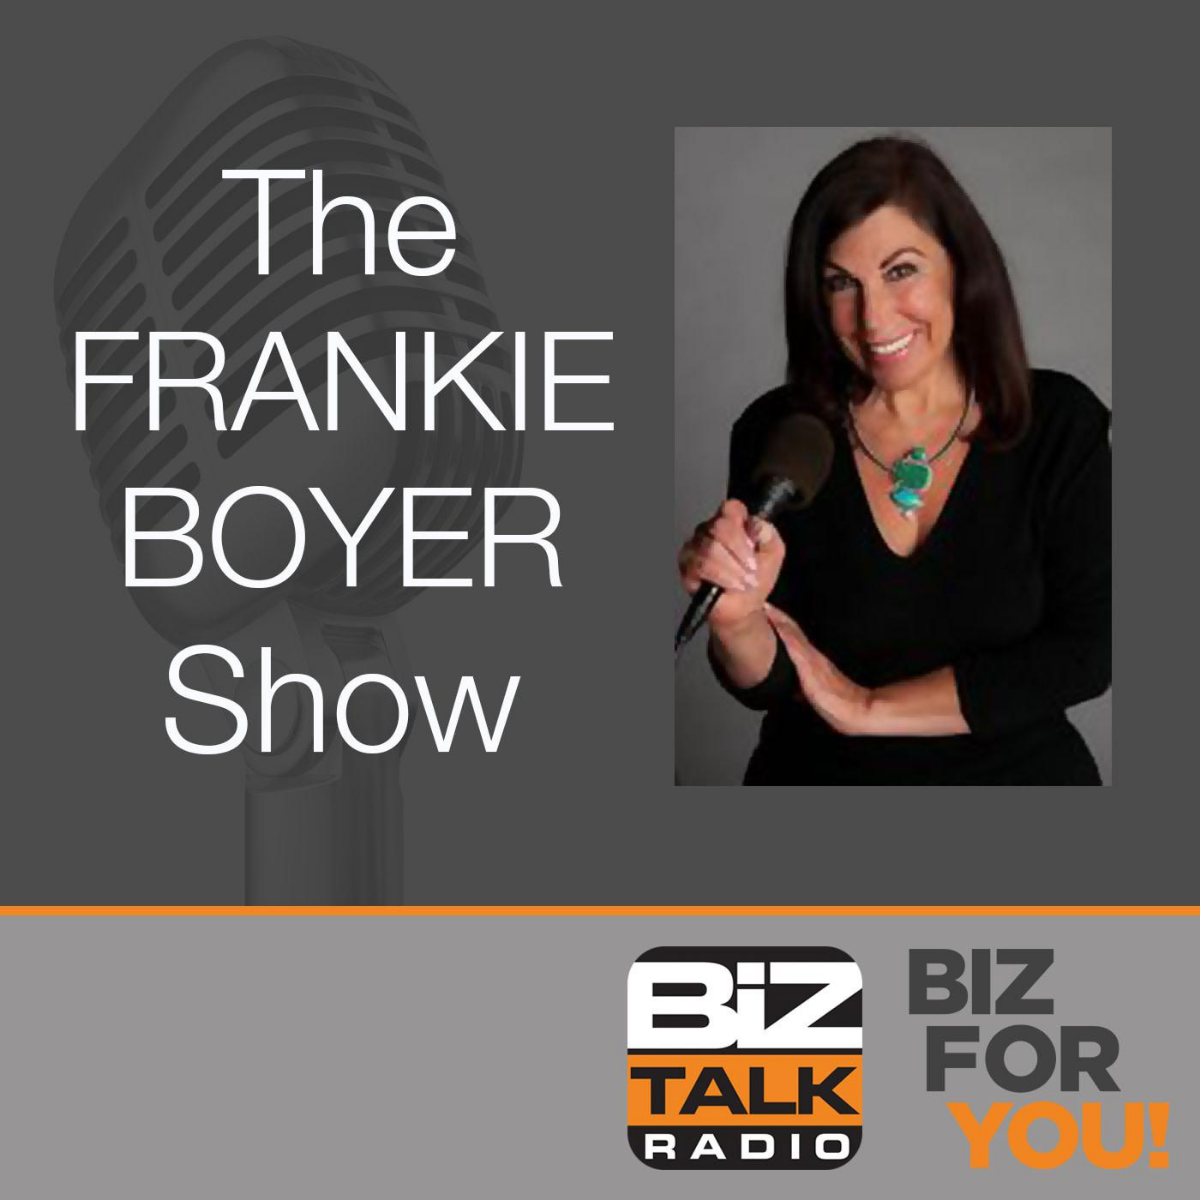 Pamela Wirth From Hello Health On The Frankie Boyer Show